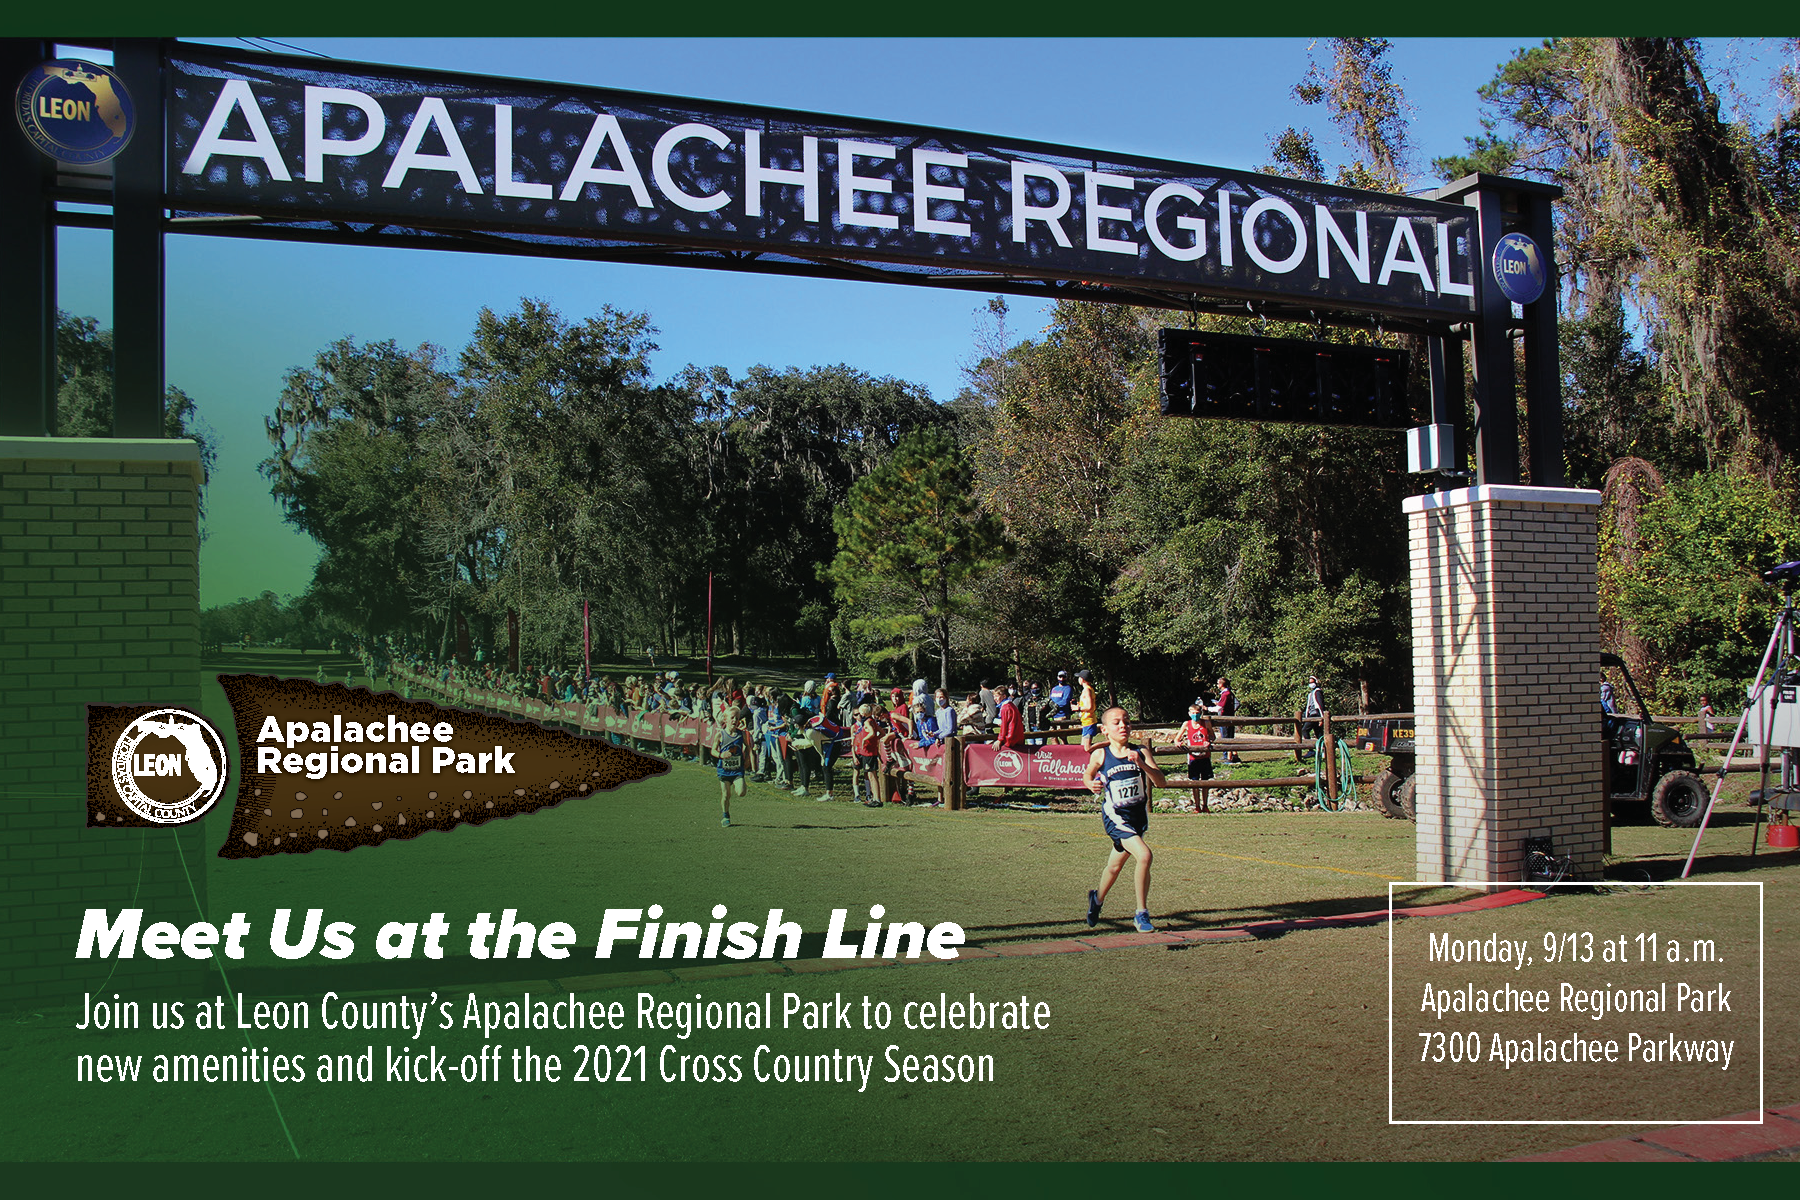 Postcard depicting Apalachee Regional Park finish line with a runner crossing